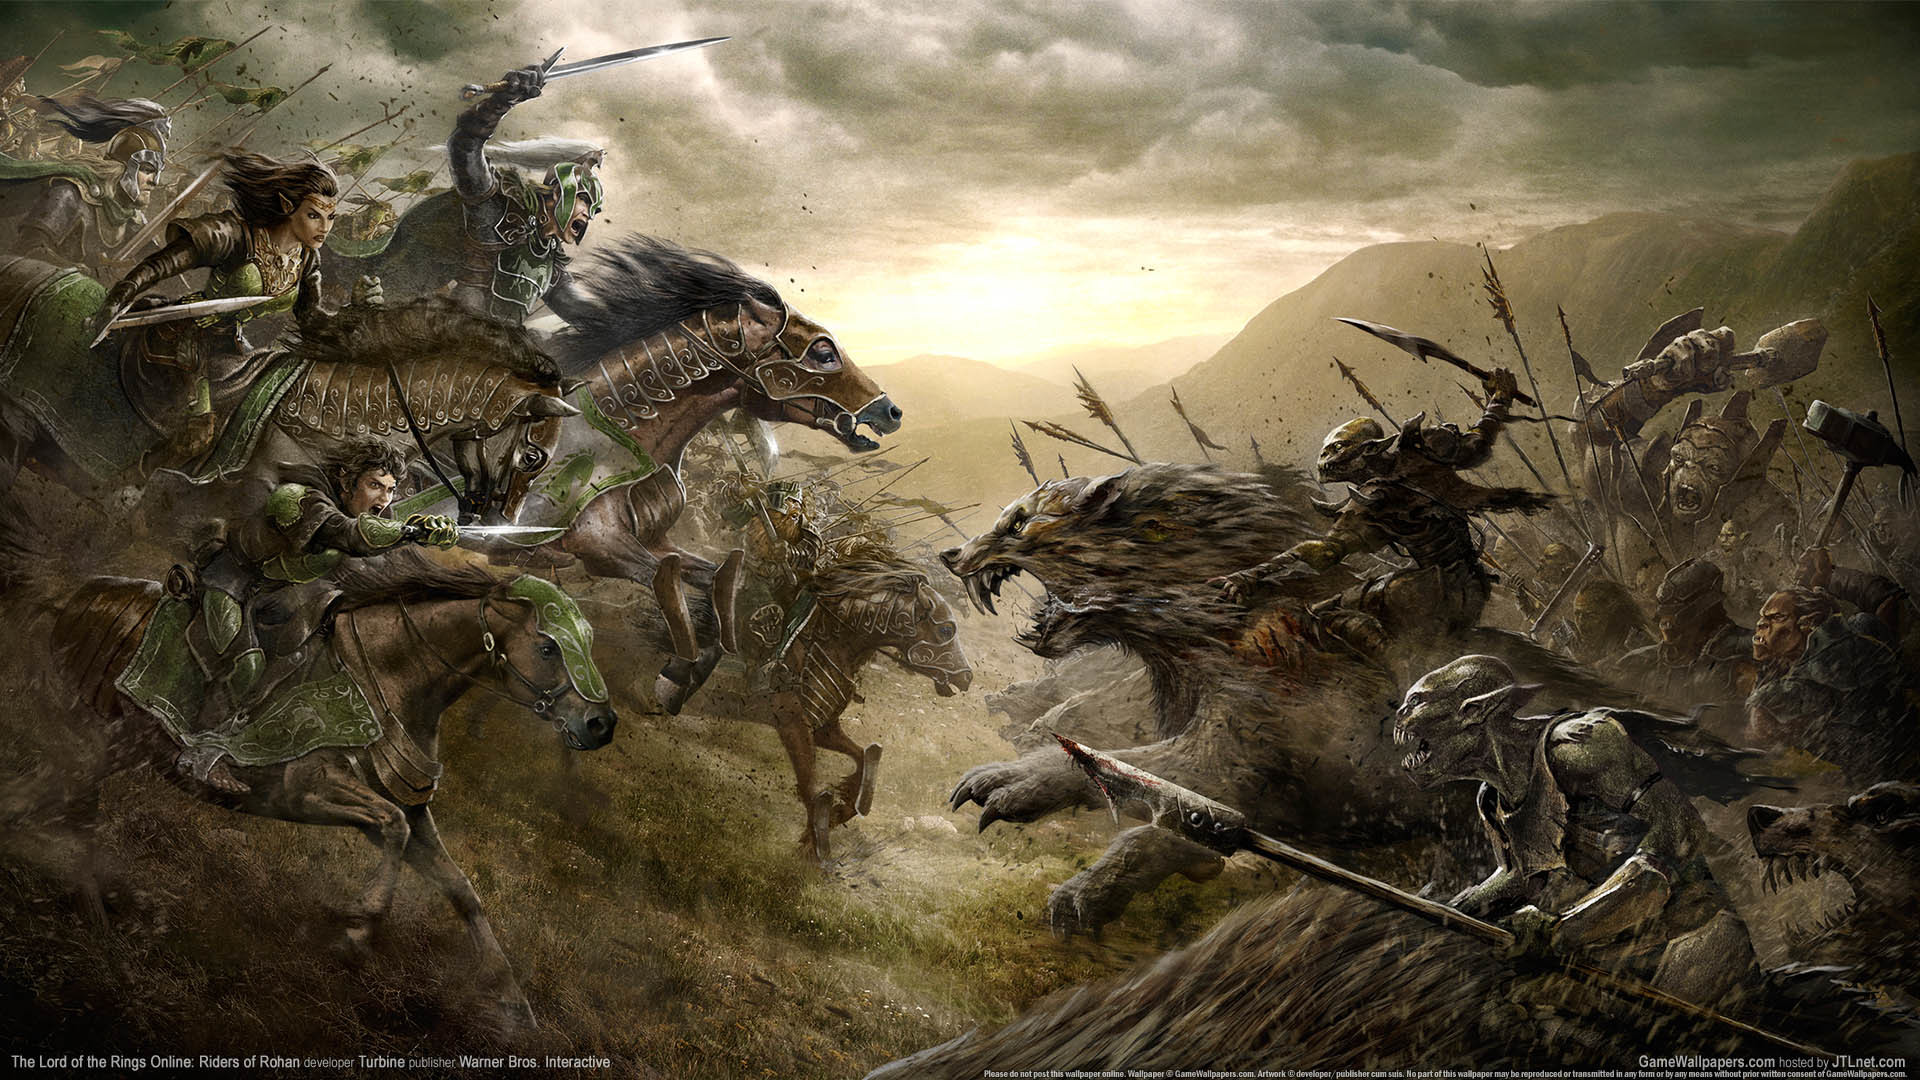 The Lord of the Rings Online: Riders of Rohan wallpaper 01 1920×1080